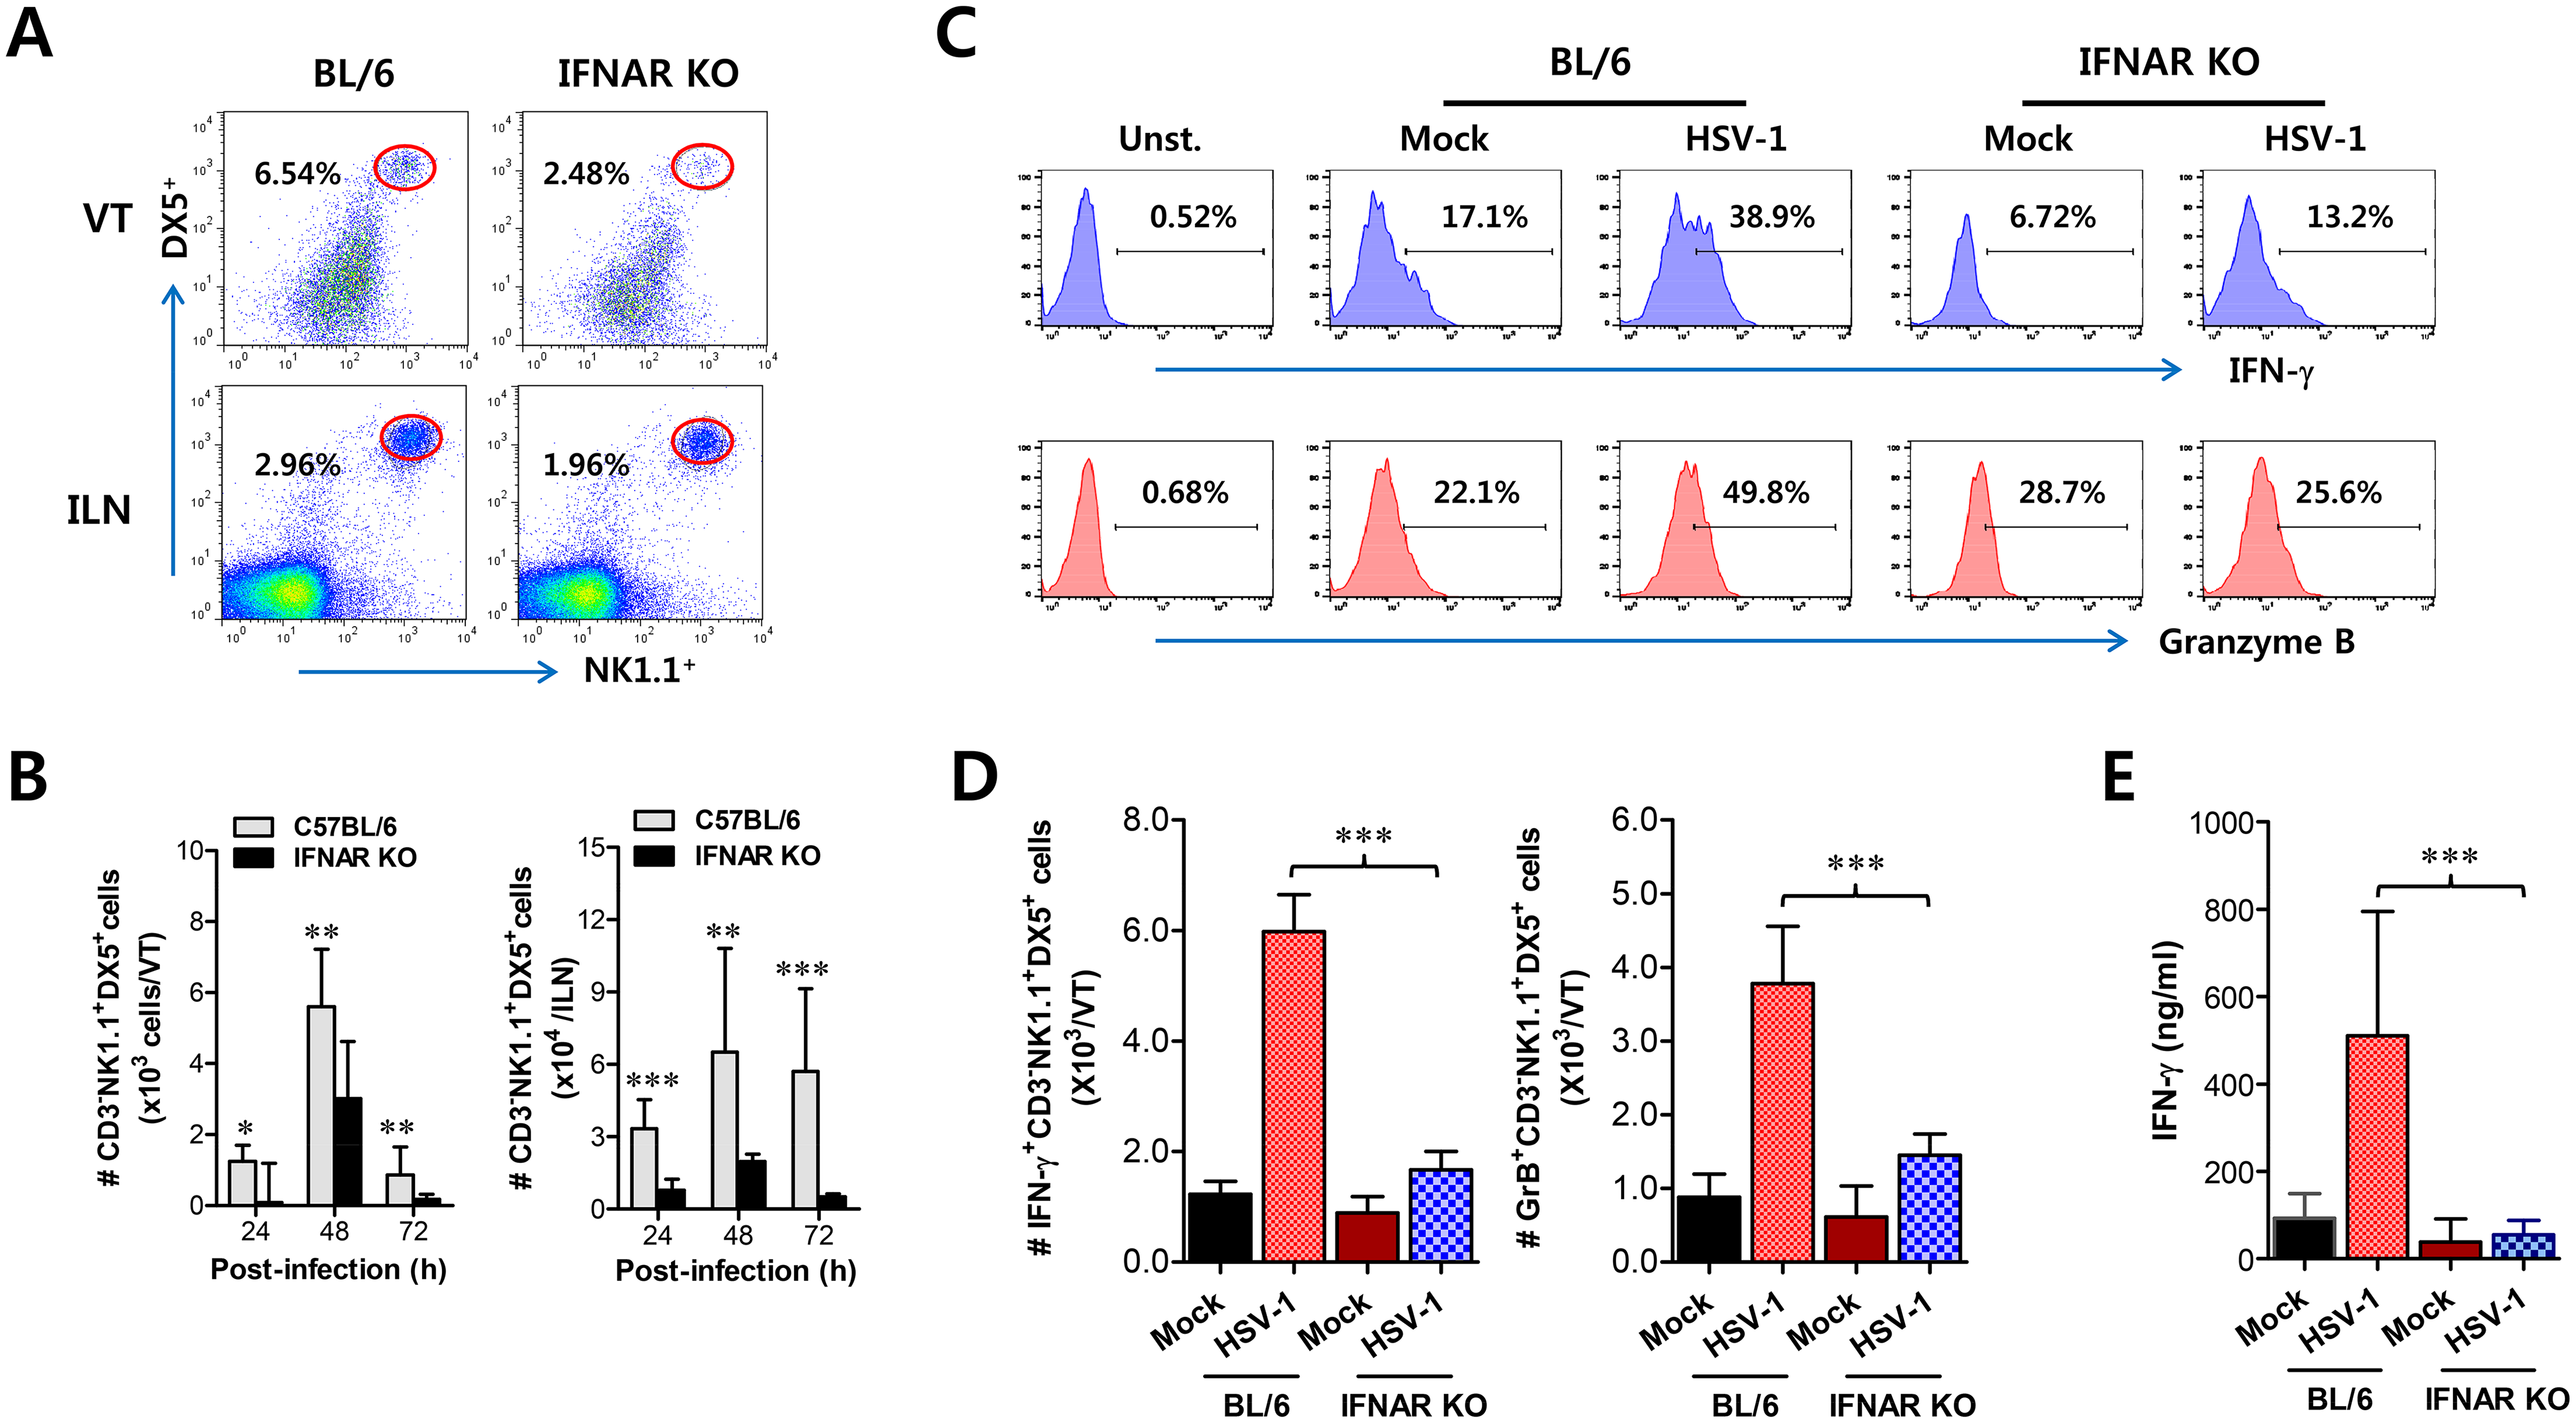 IFN-I signaling is involved in connected recruitment and activation of NK cells to CD11b<sup>+</sup>Ly-6C<sup>hi</sup> monocytes.